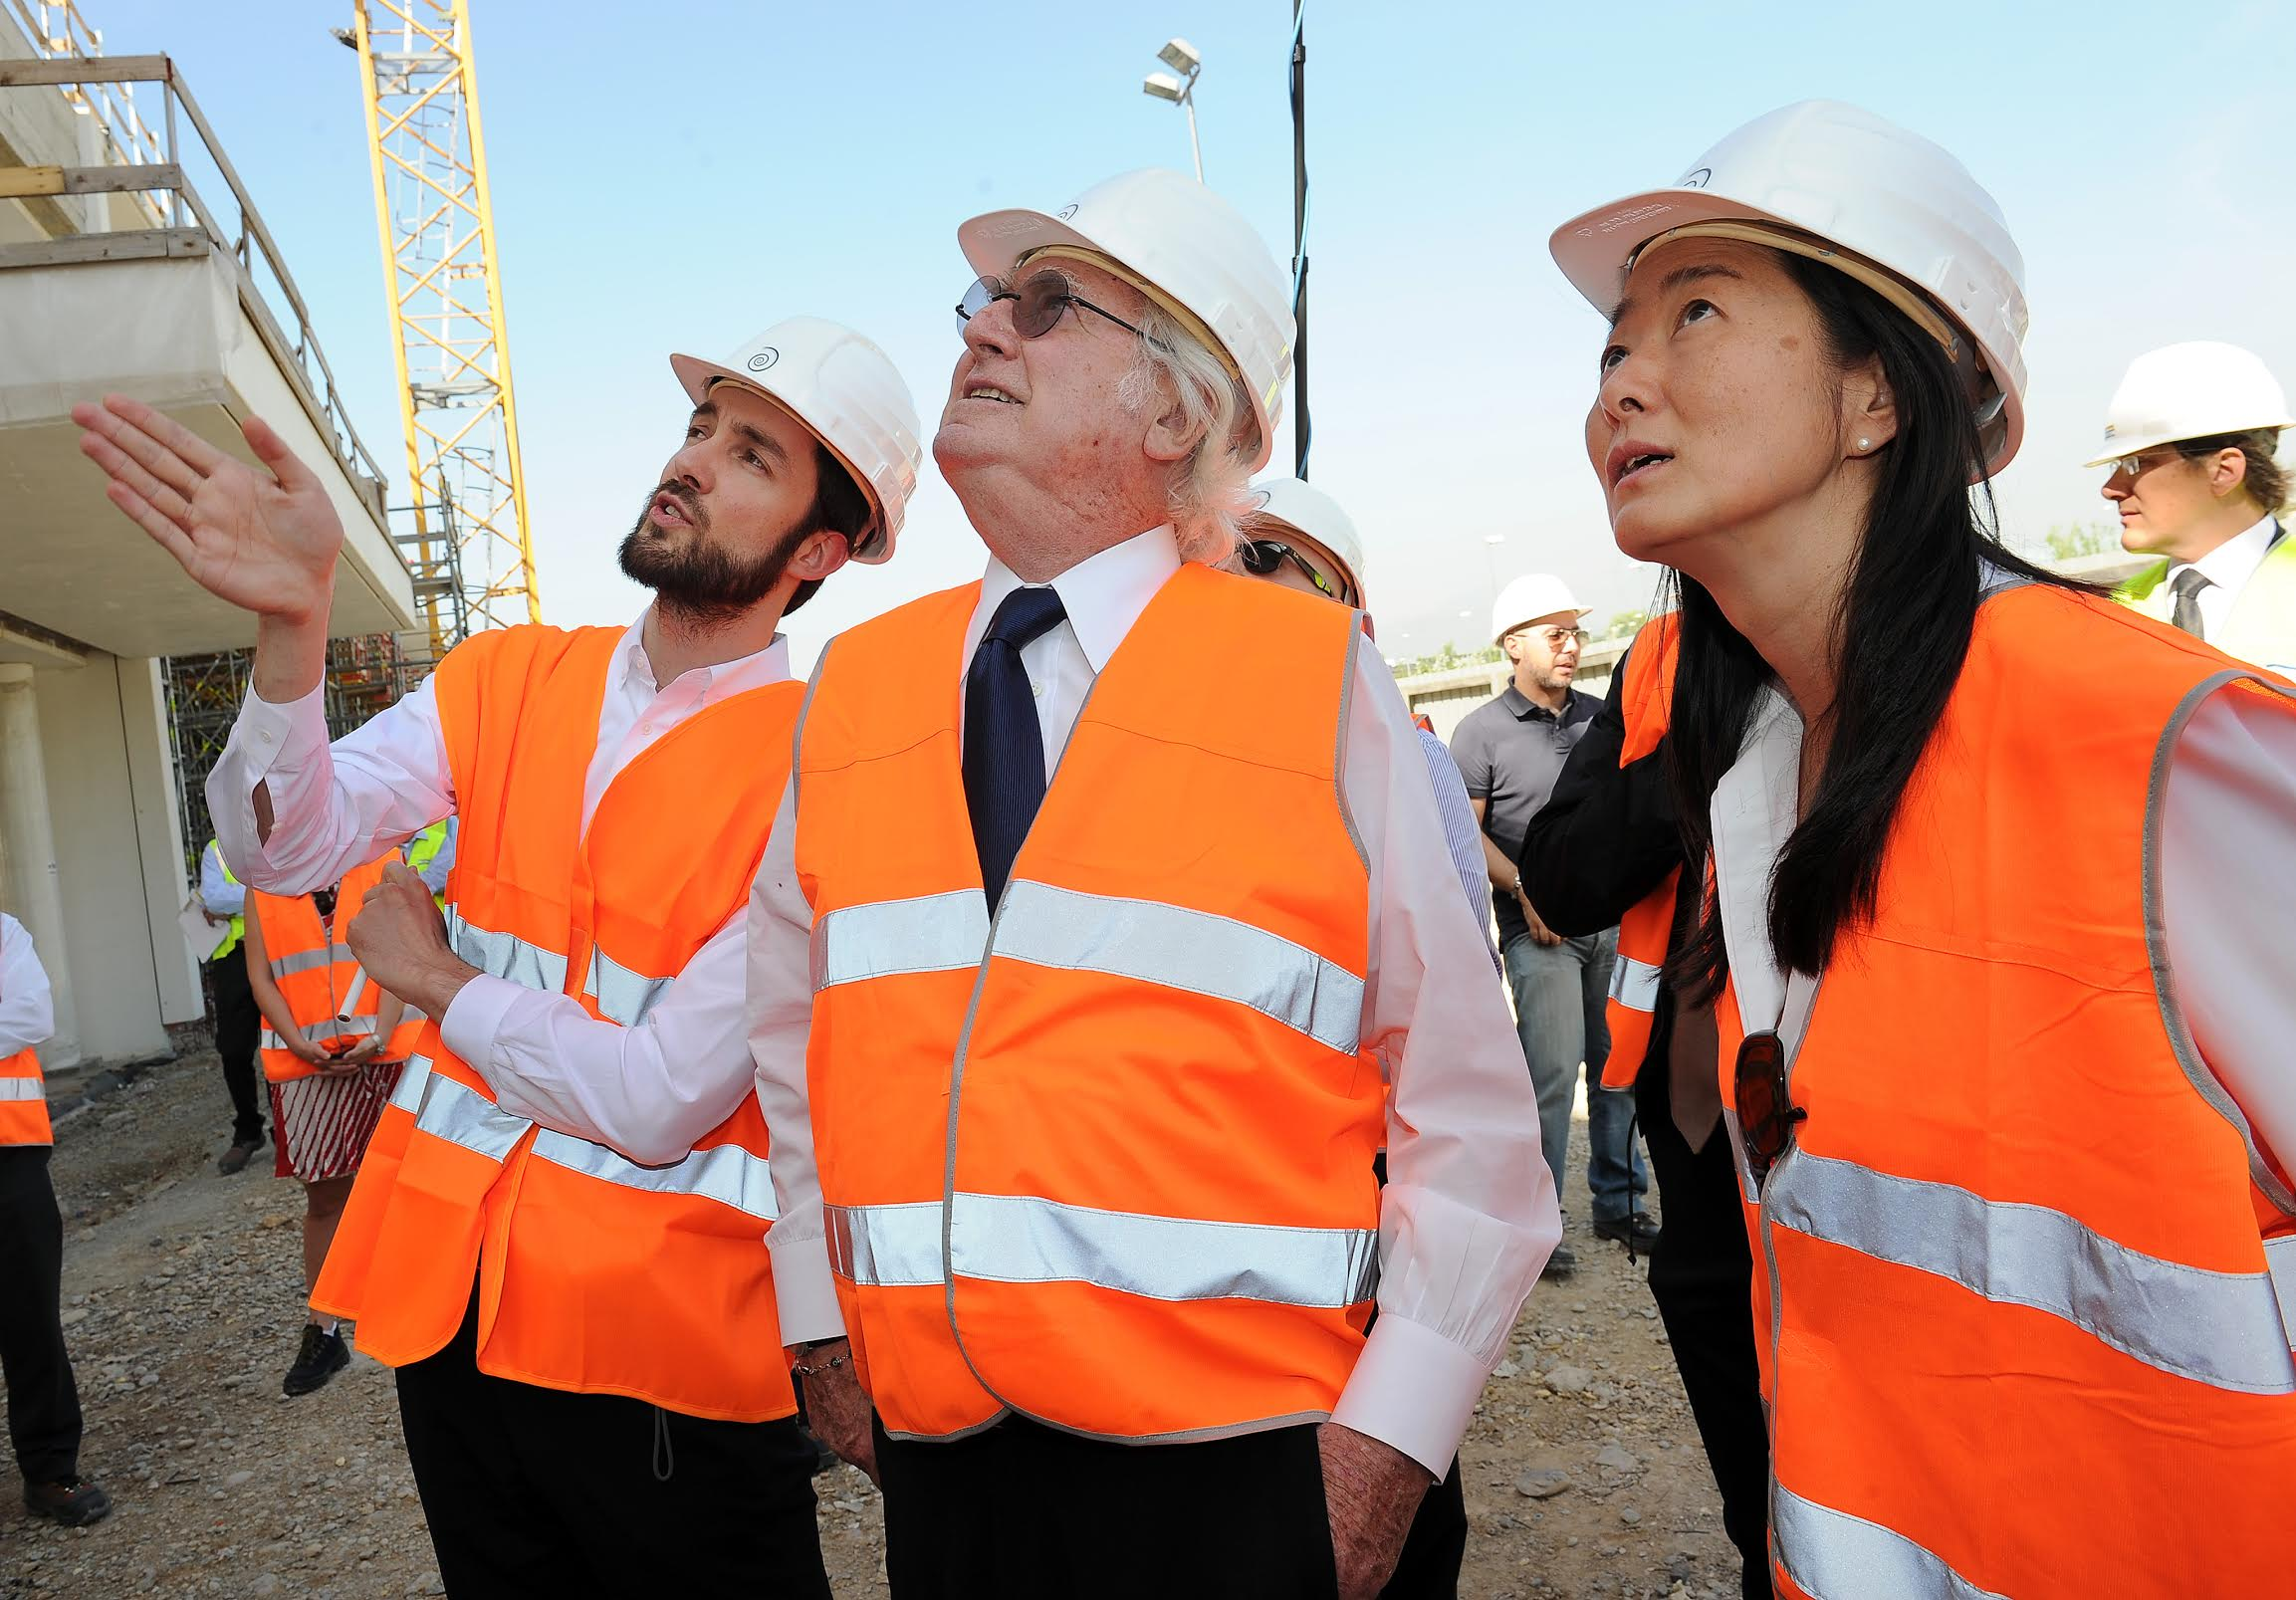 Vivian Lee with Ricard Meier and Simone Ferracina at the Italcementi i.lab construction site in Bergamo, Italy.